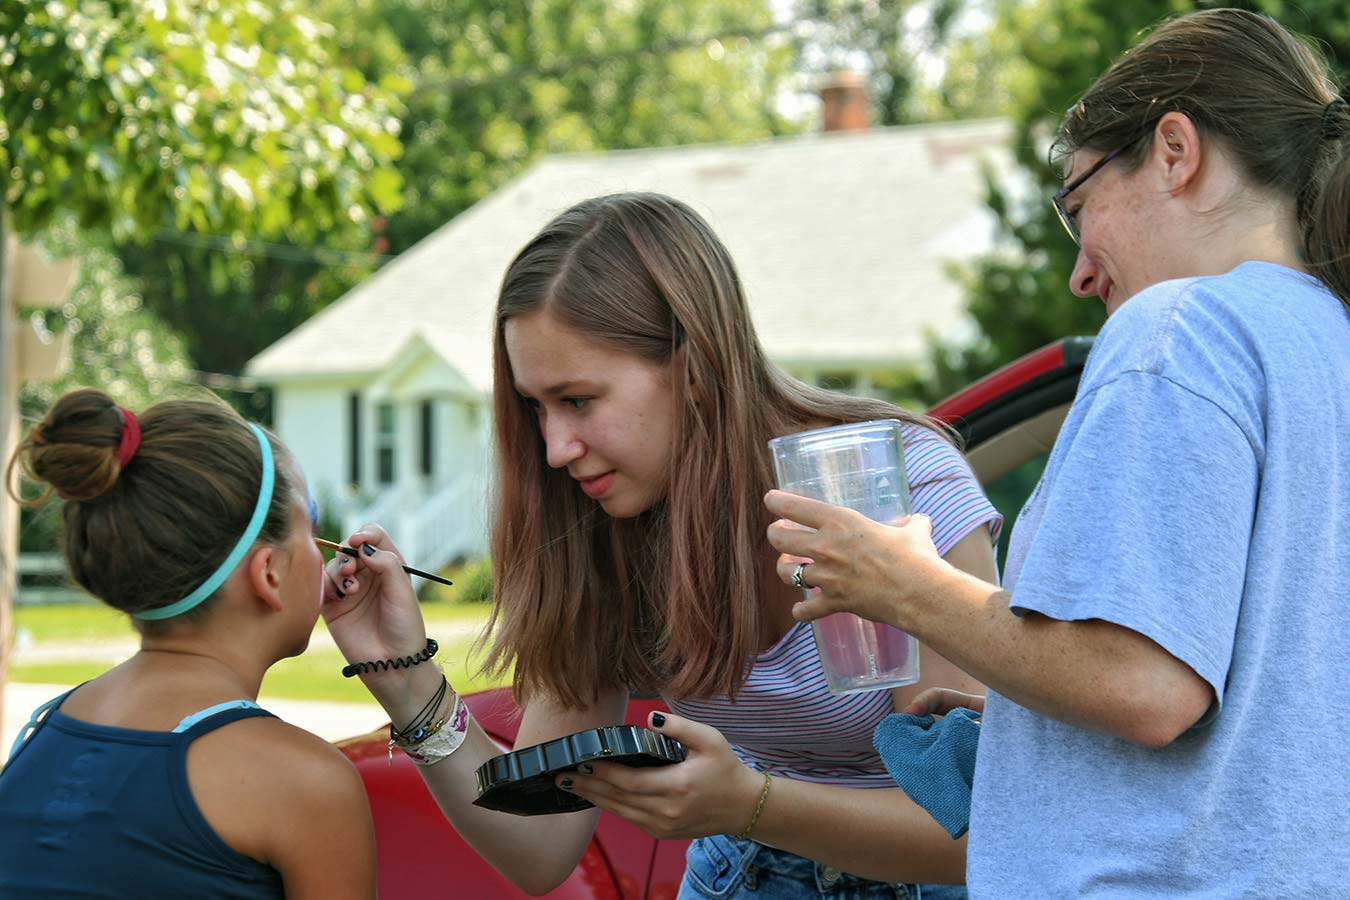 A Girl Facepainting At the 4th of July Tilghman Island Community Party